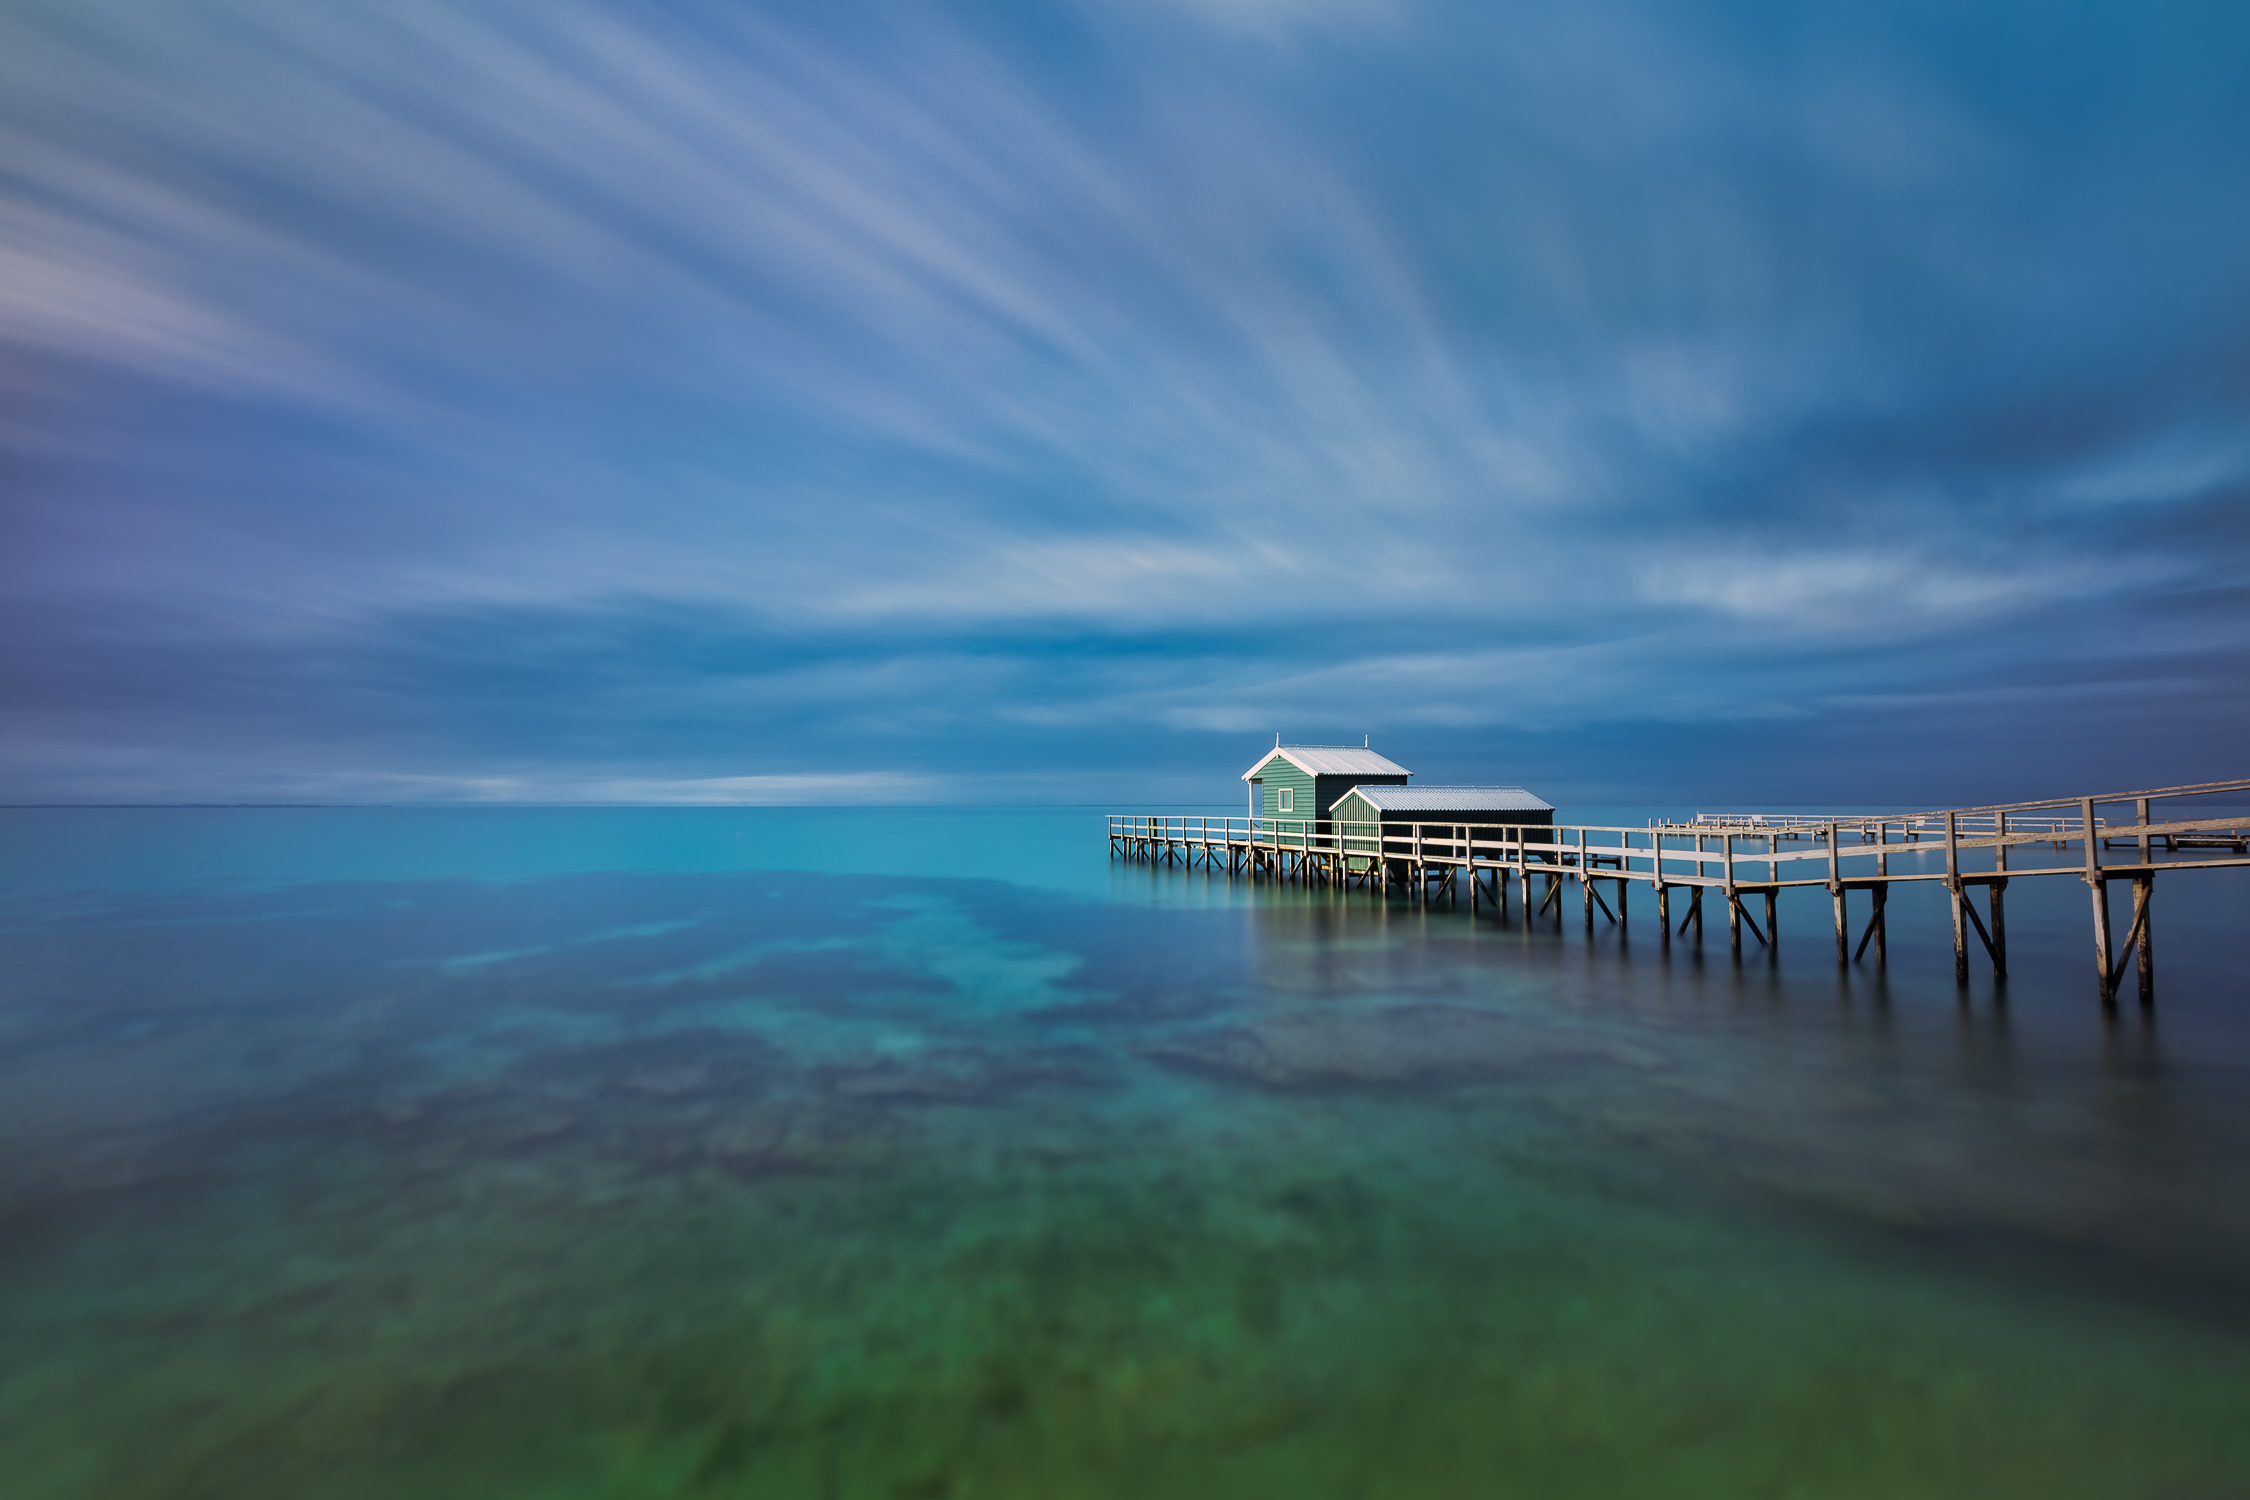 Mornington Peninsula - Shelly Beach Long Exposure Photography | We Are Raw Photography Photo by Viva Karolina